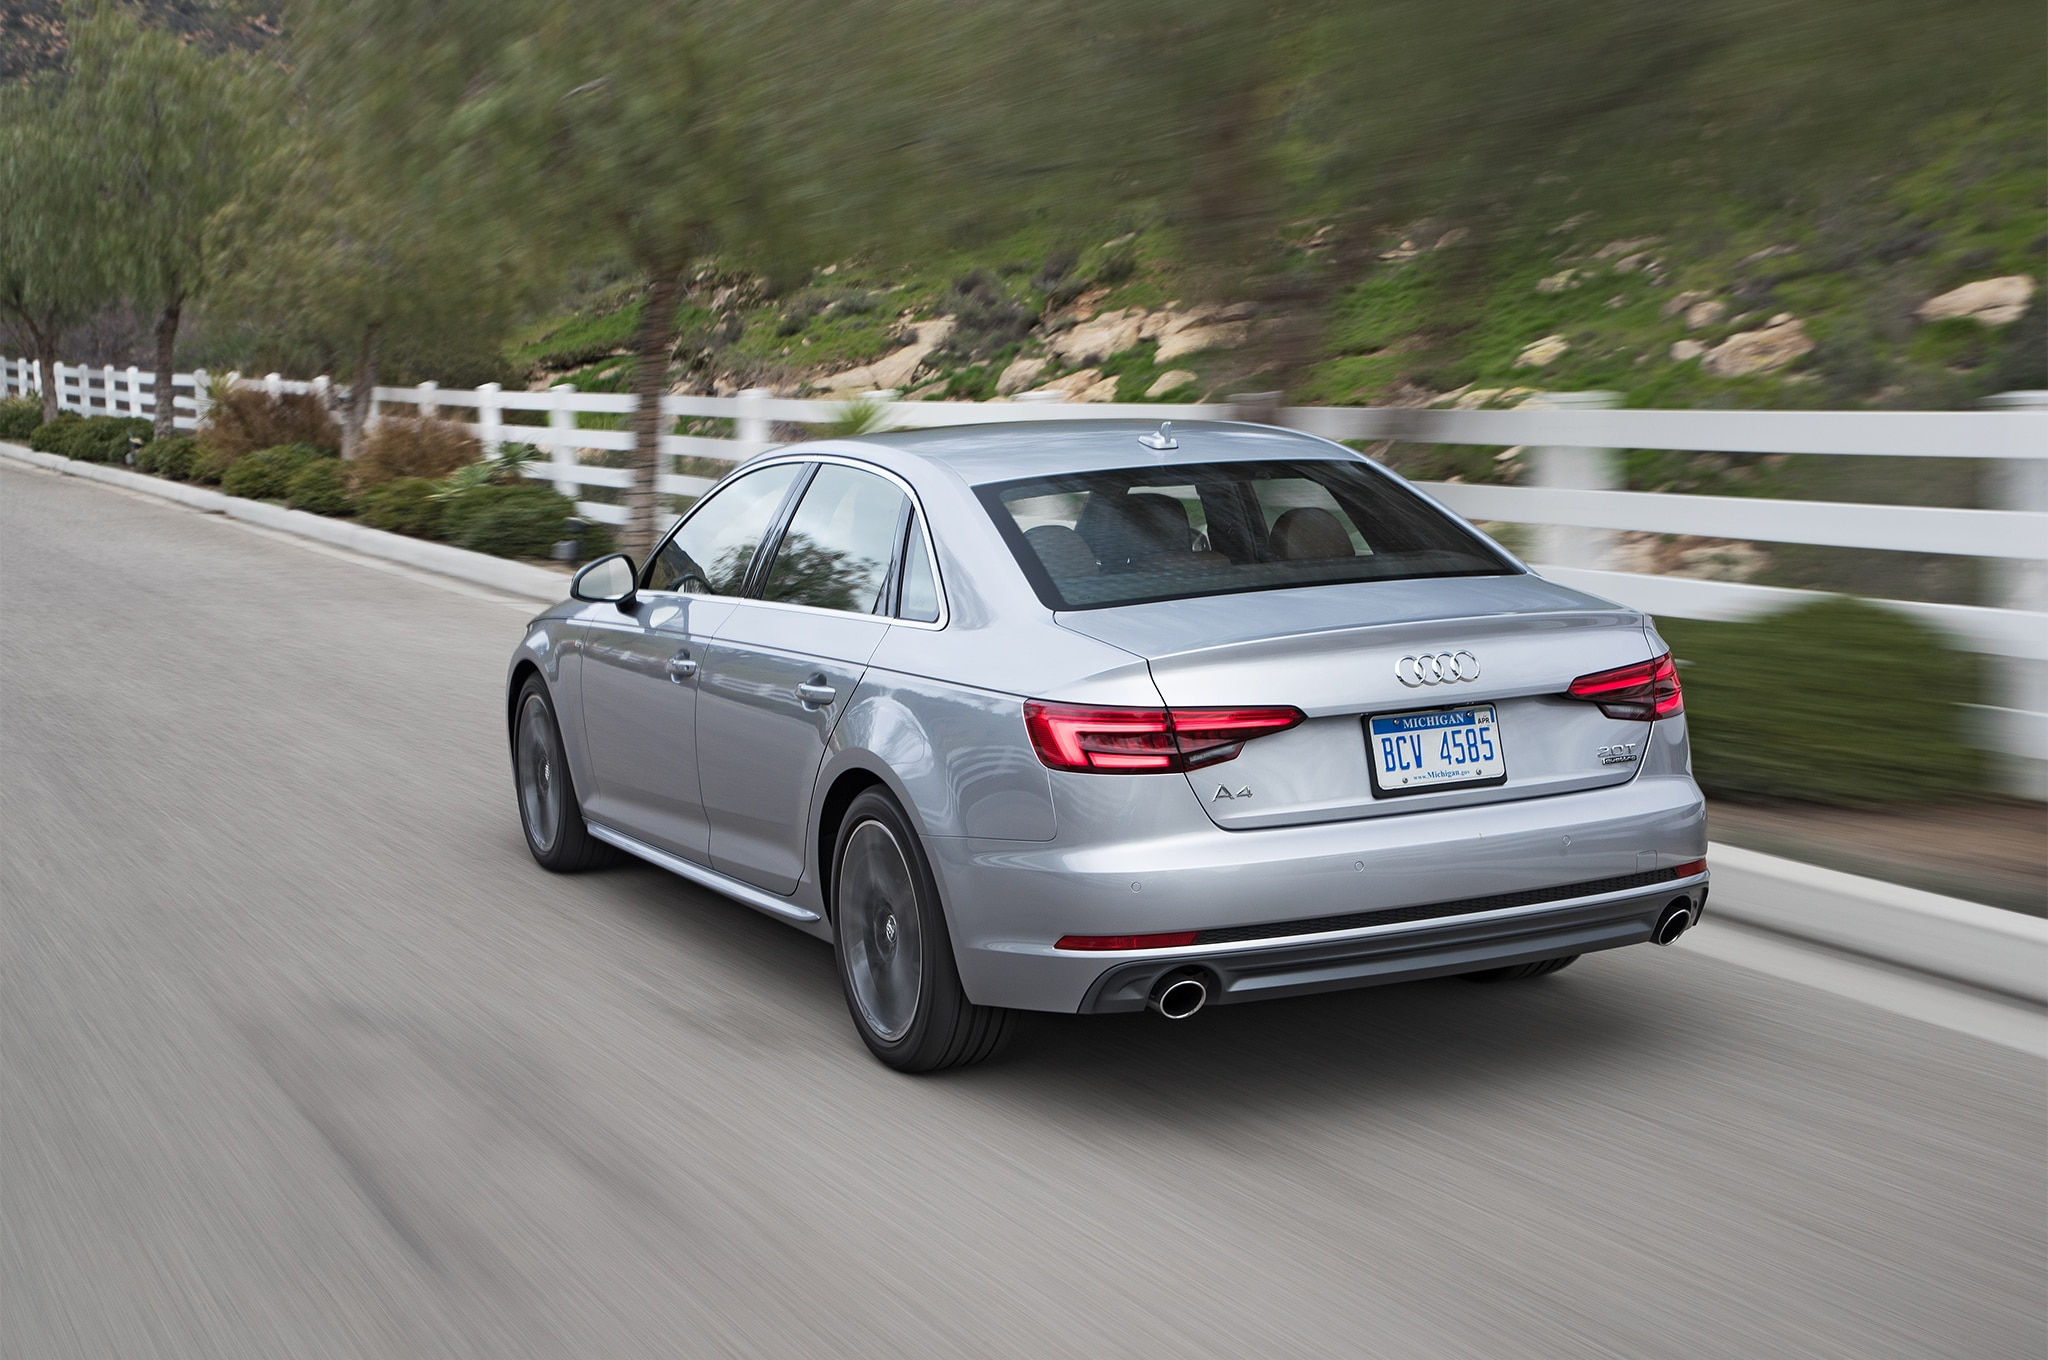 2017 Audi A4 20T Quattro rear three quarter in motion